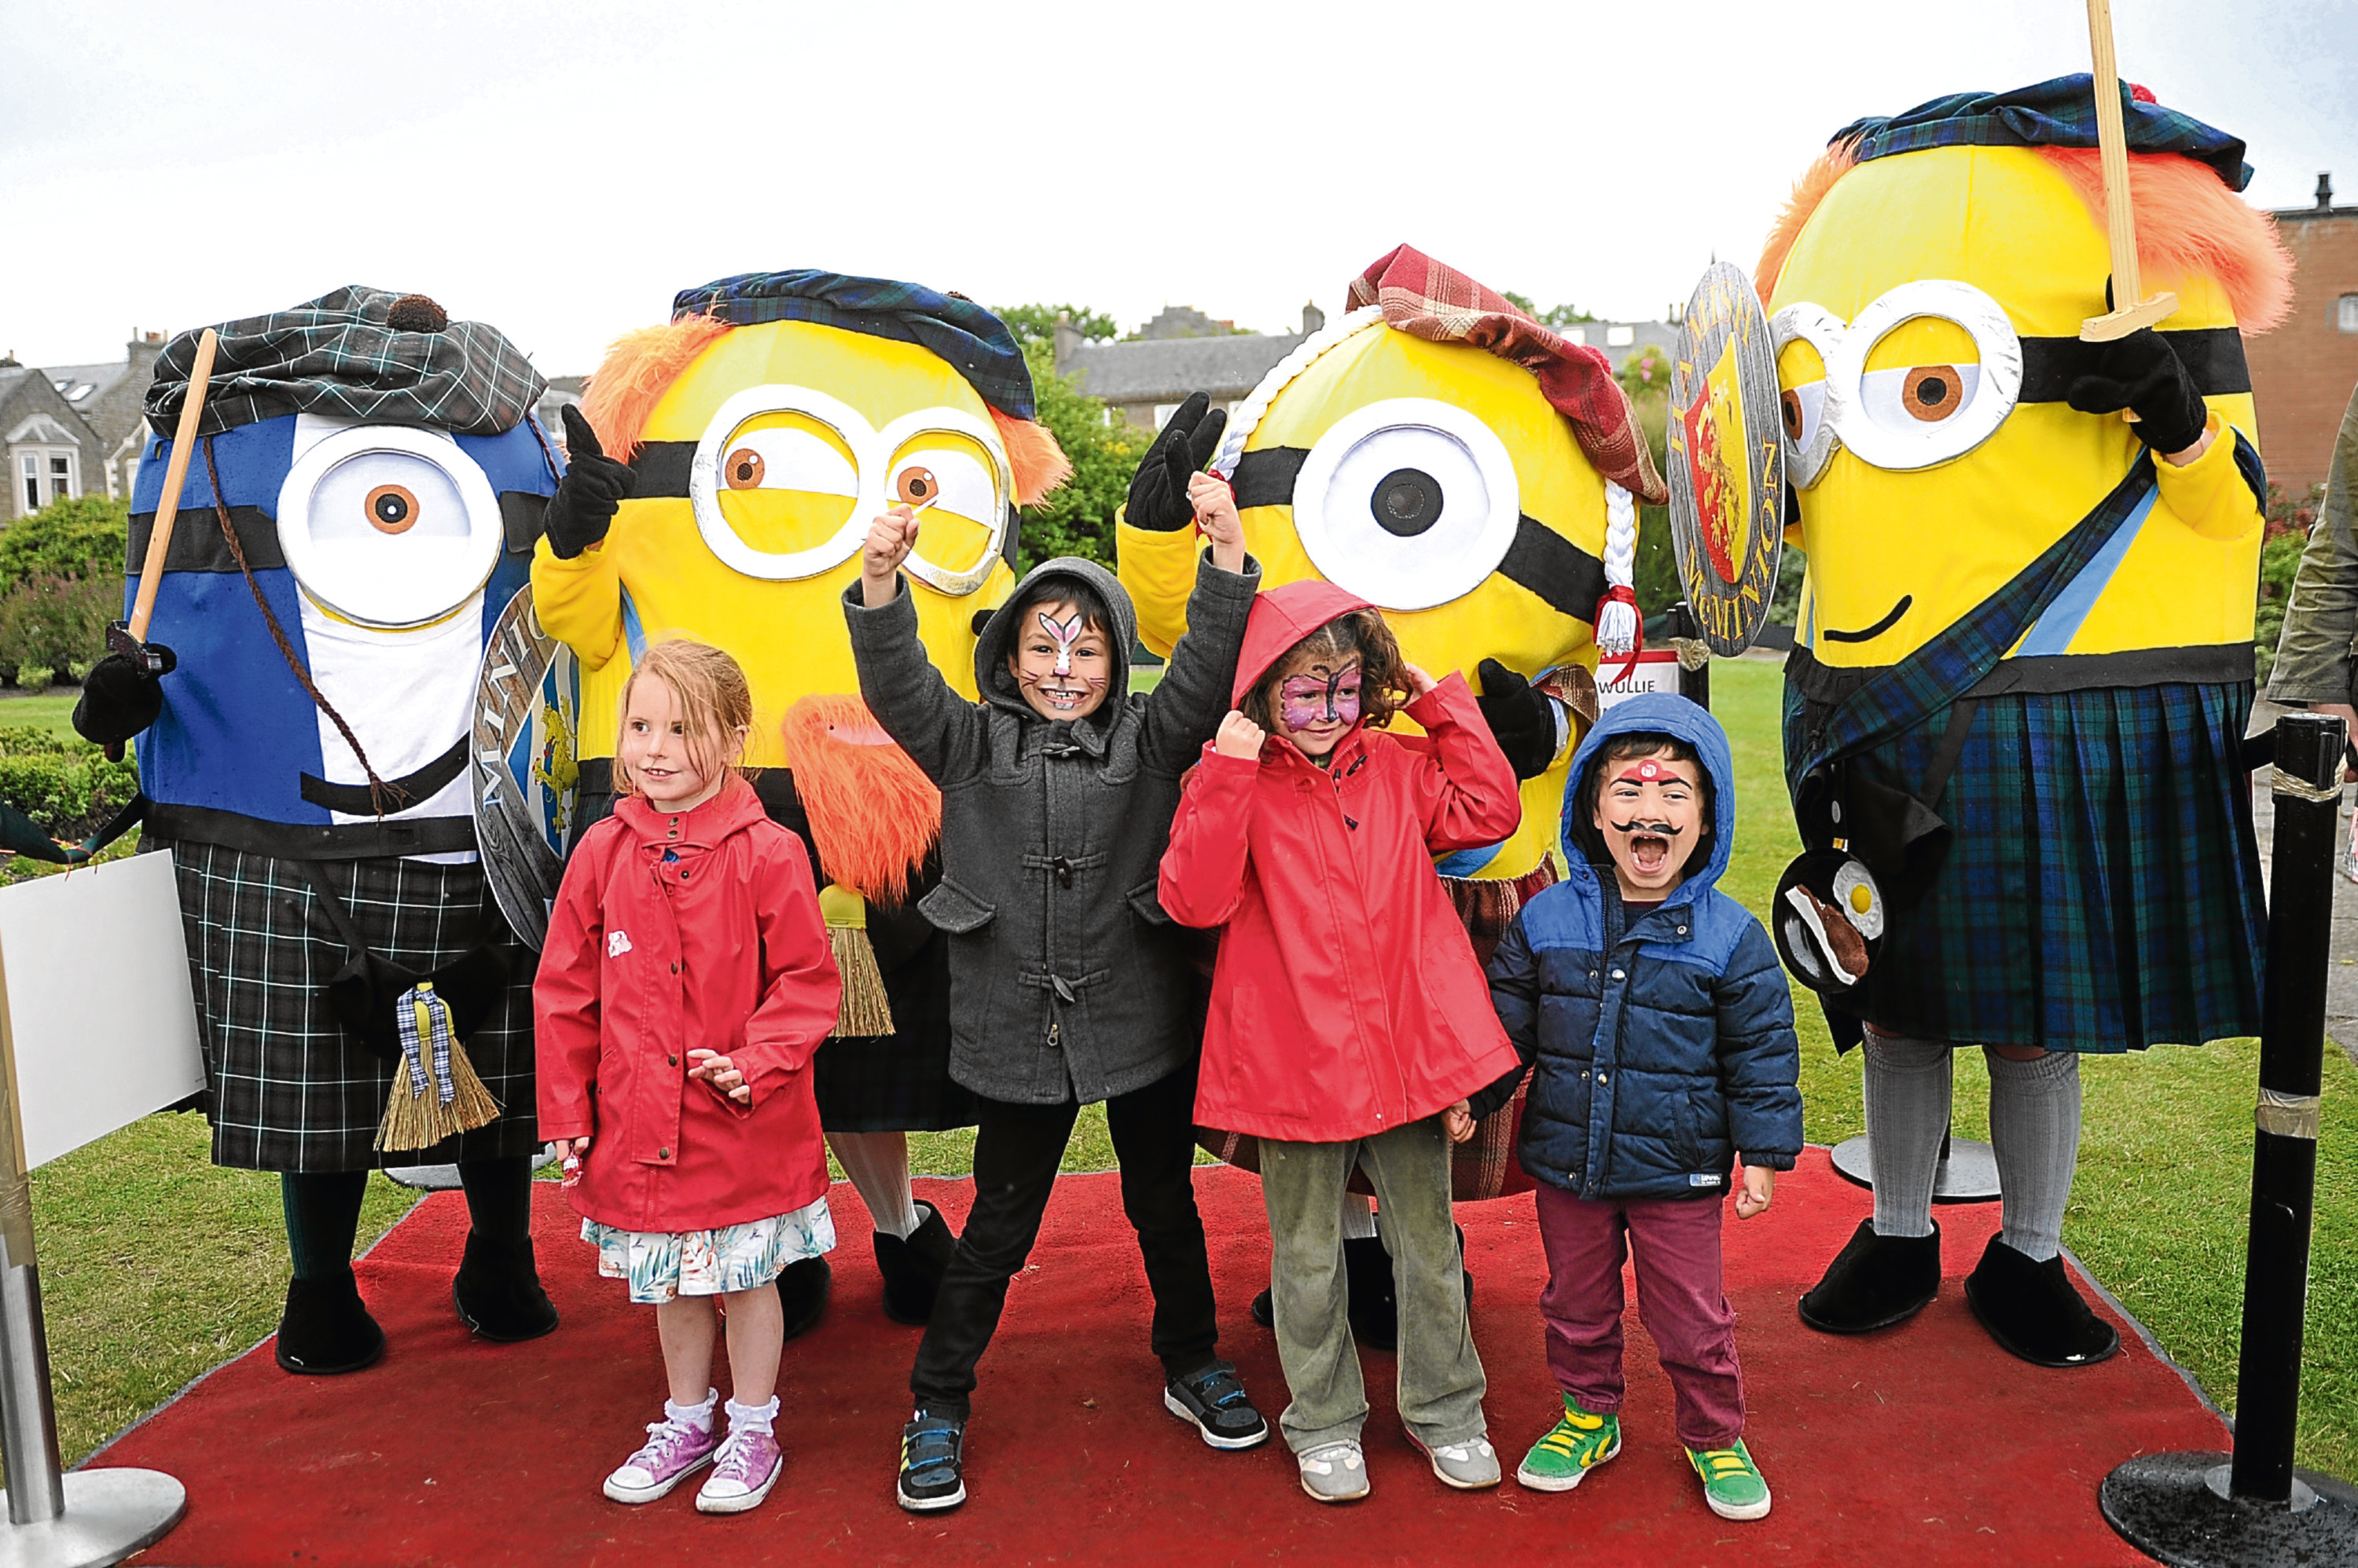 The McMinions with, from left to right, Lily Johnston, Nic Sanchez, Elvira Rosa and Lucas Sanchez at Broughty Ferry.